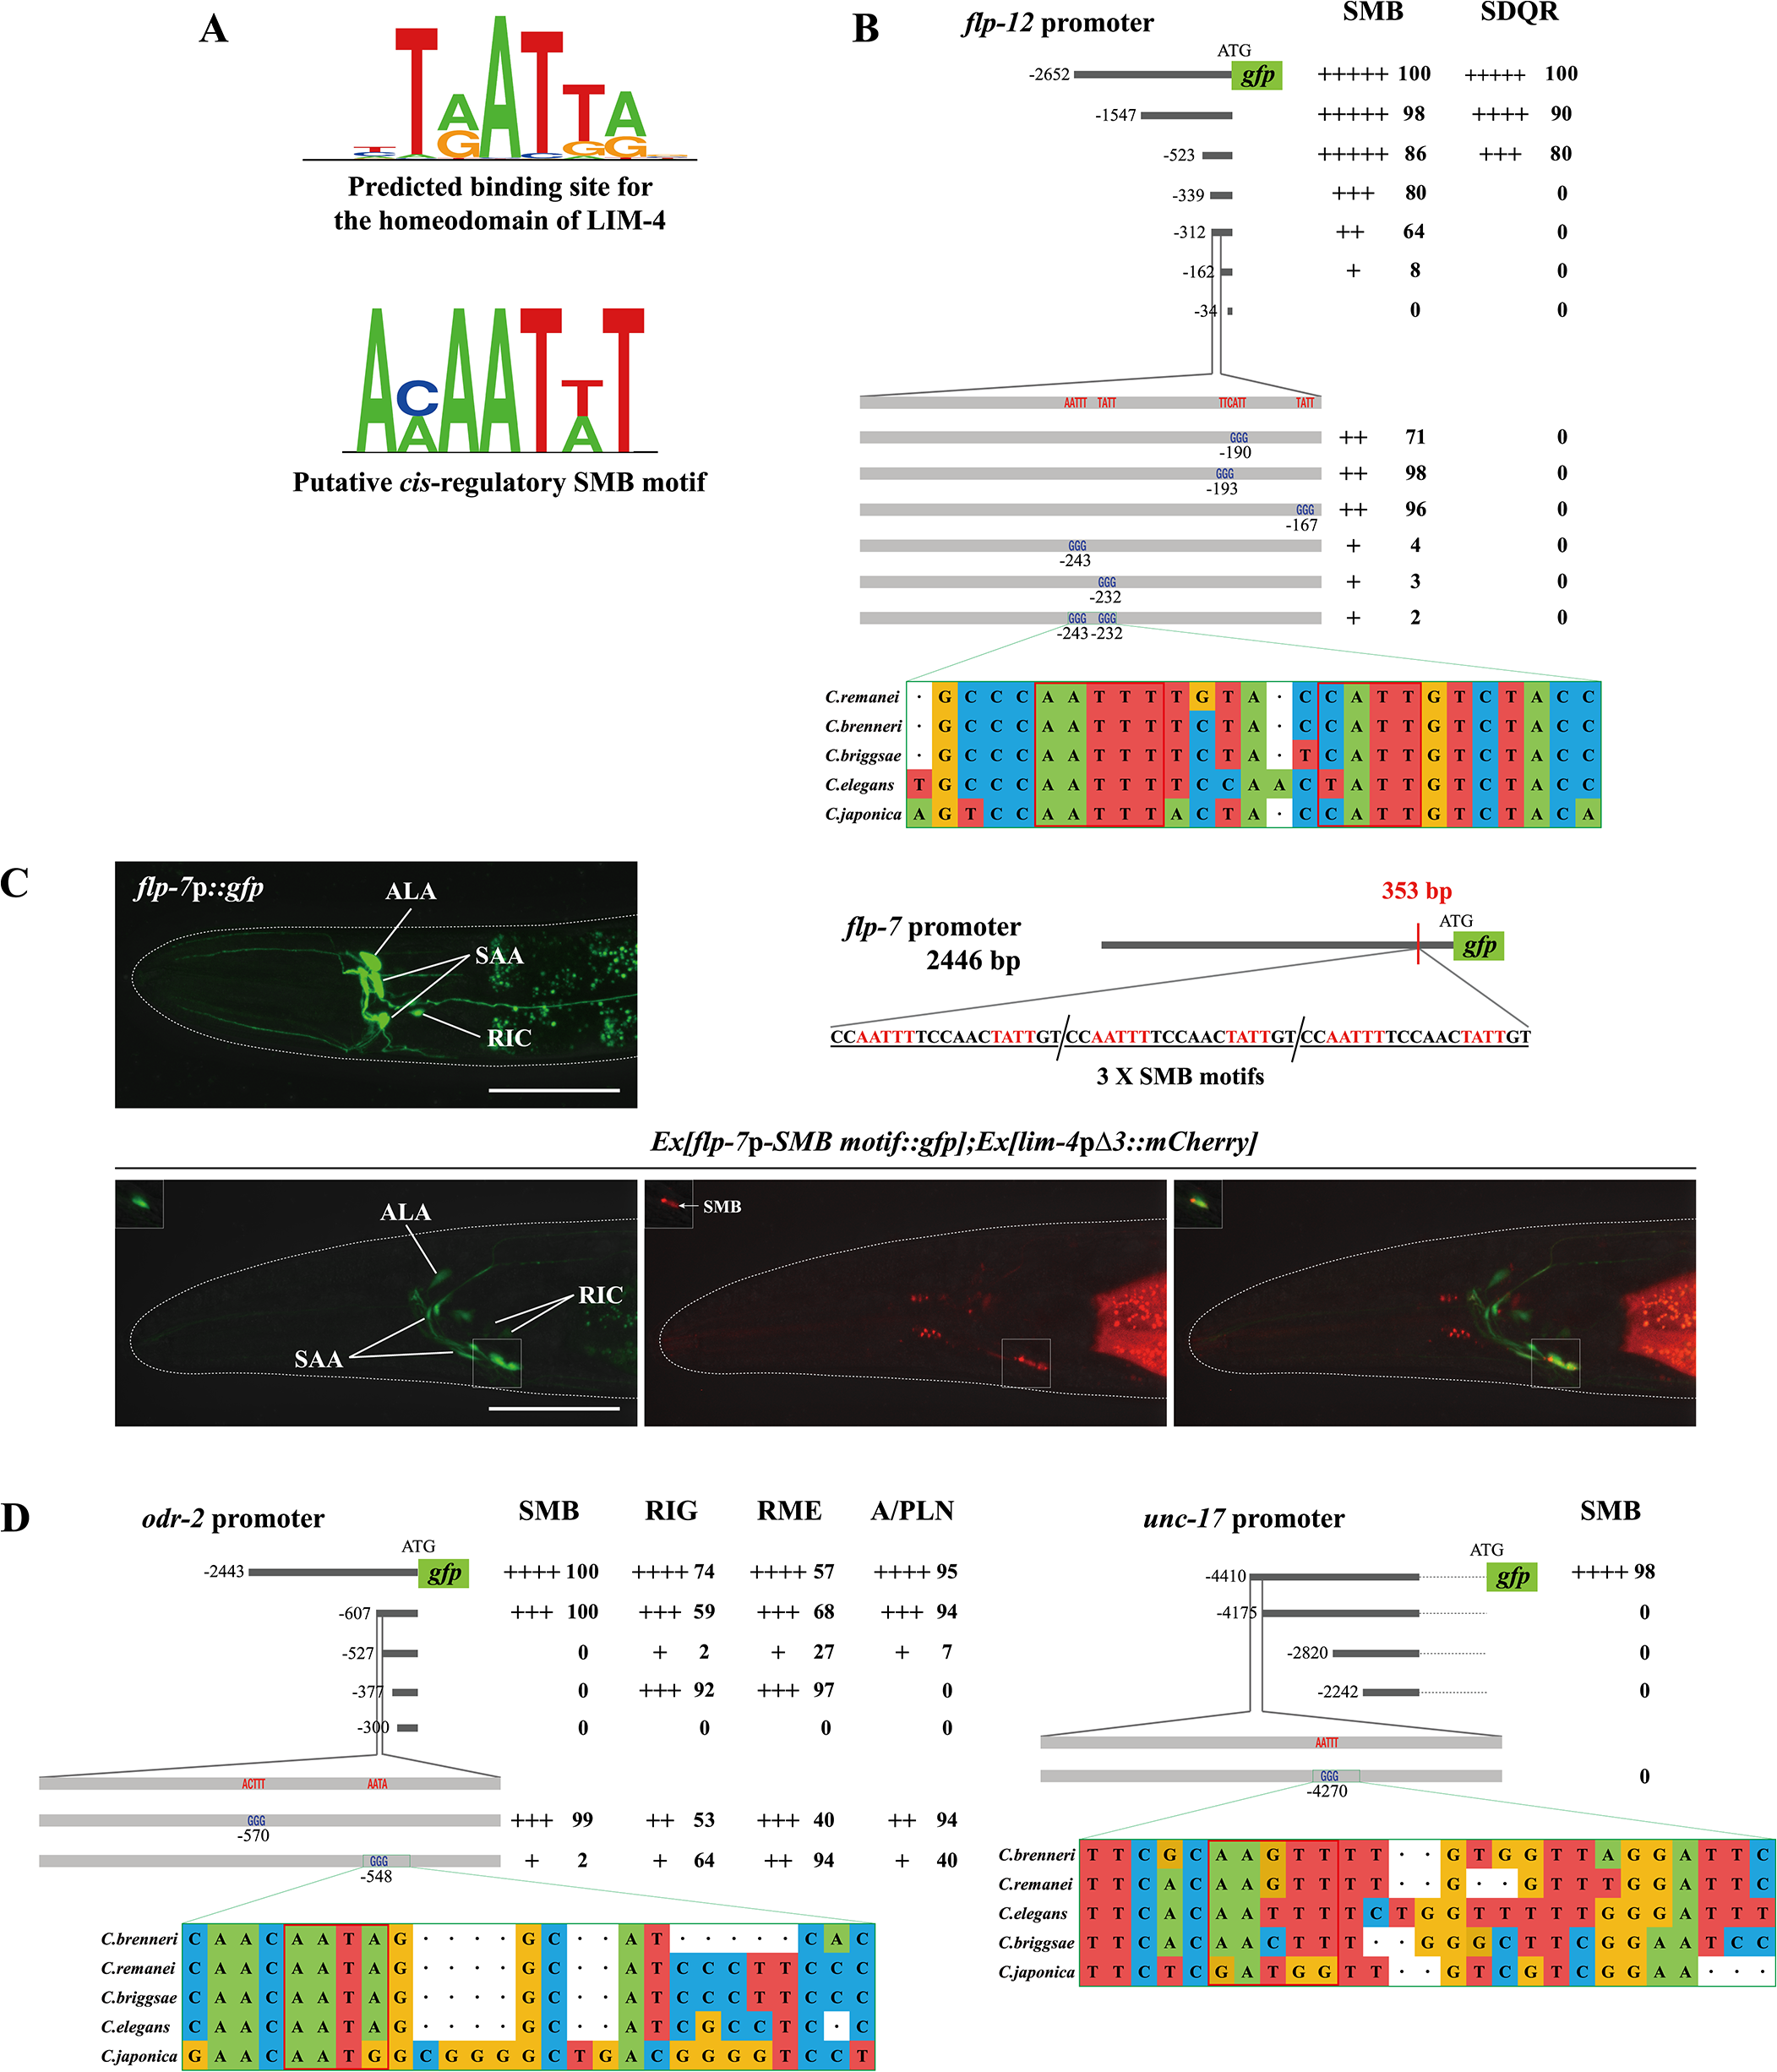 A <i>cis</i>-regulatory motif is necessary and sufficient to drive expression of terminally differentiated SMB markers.